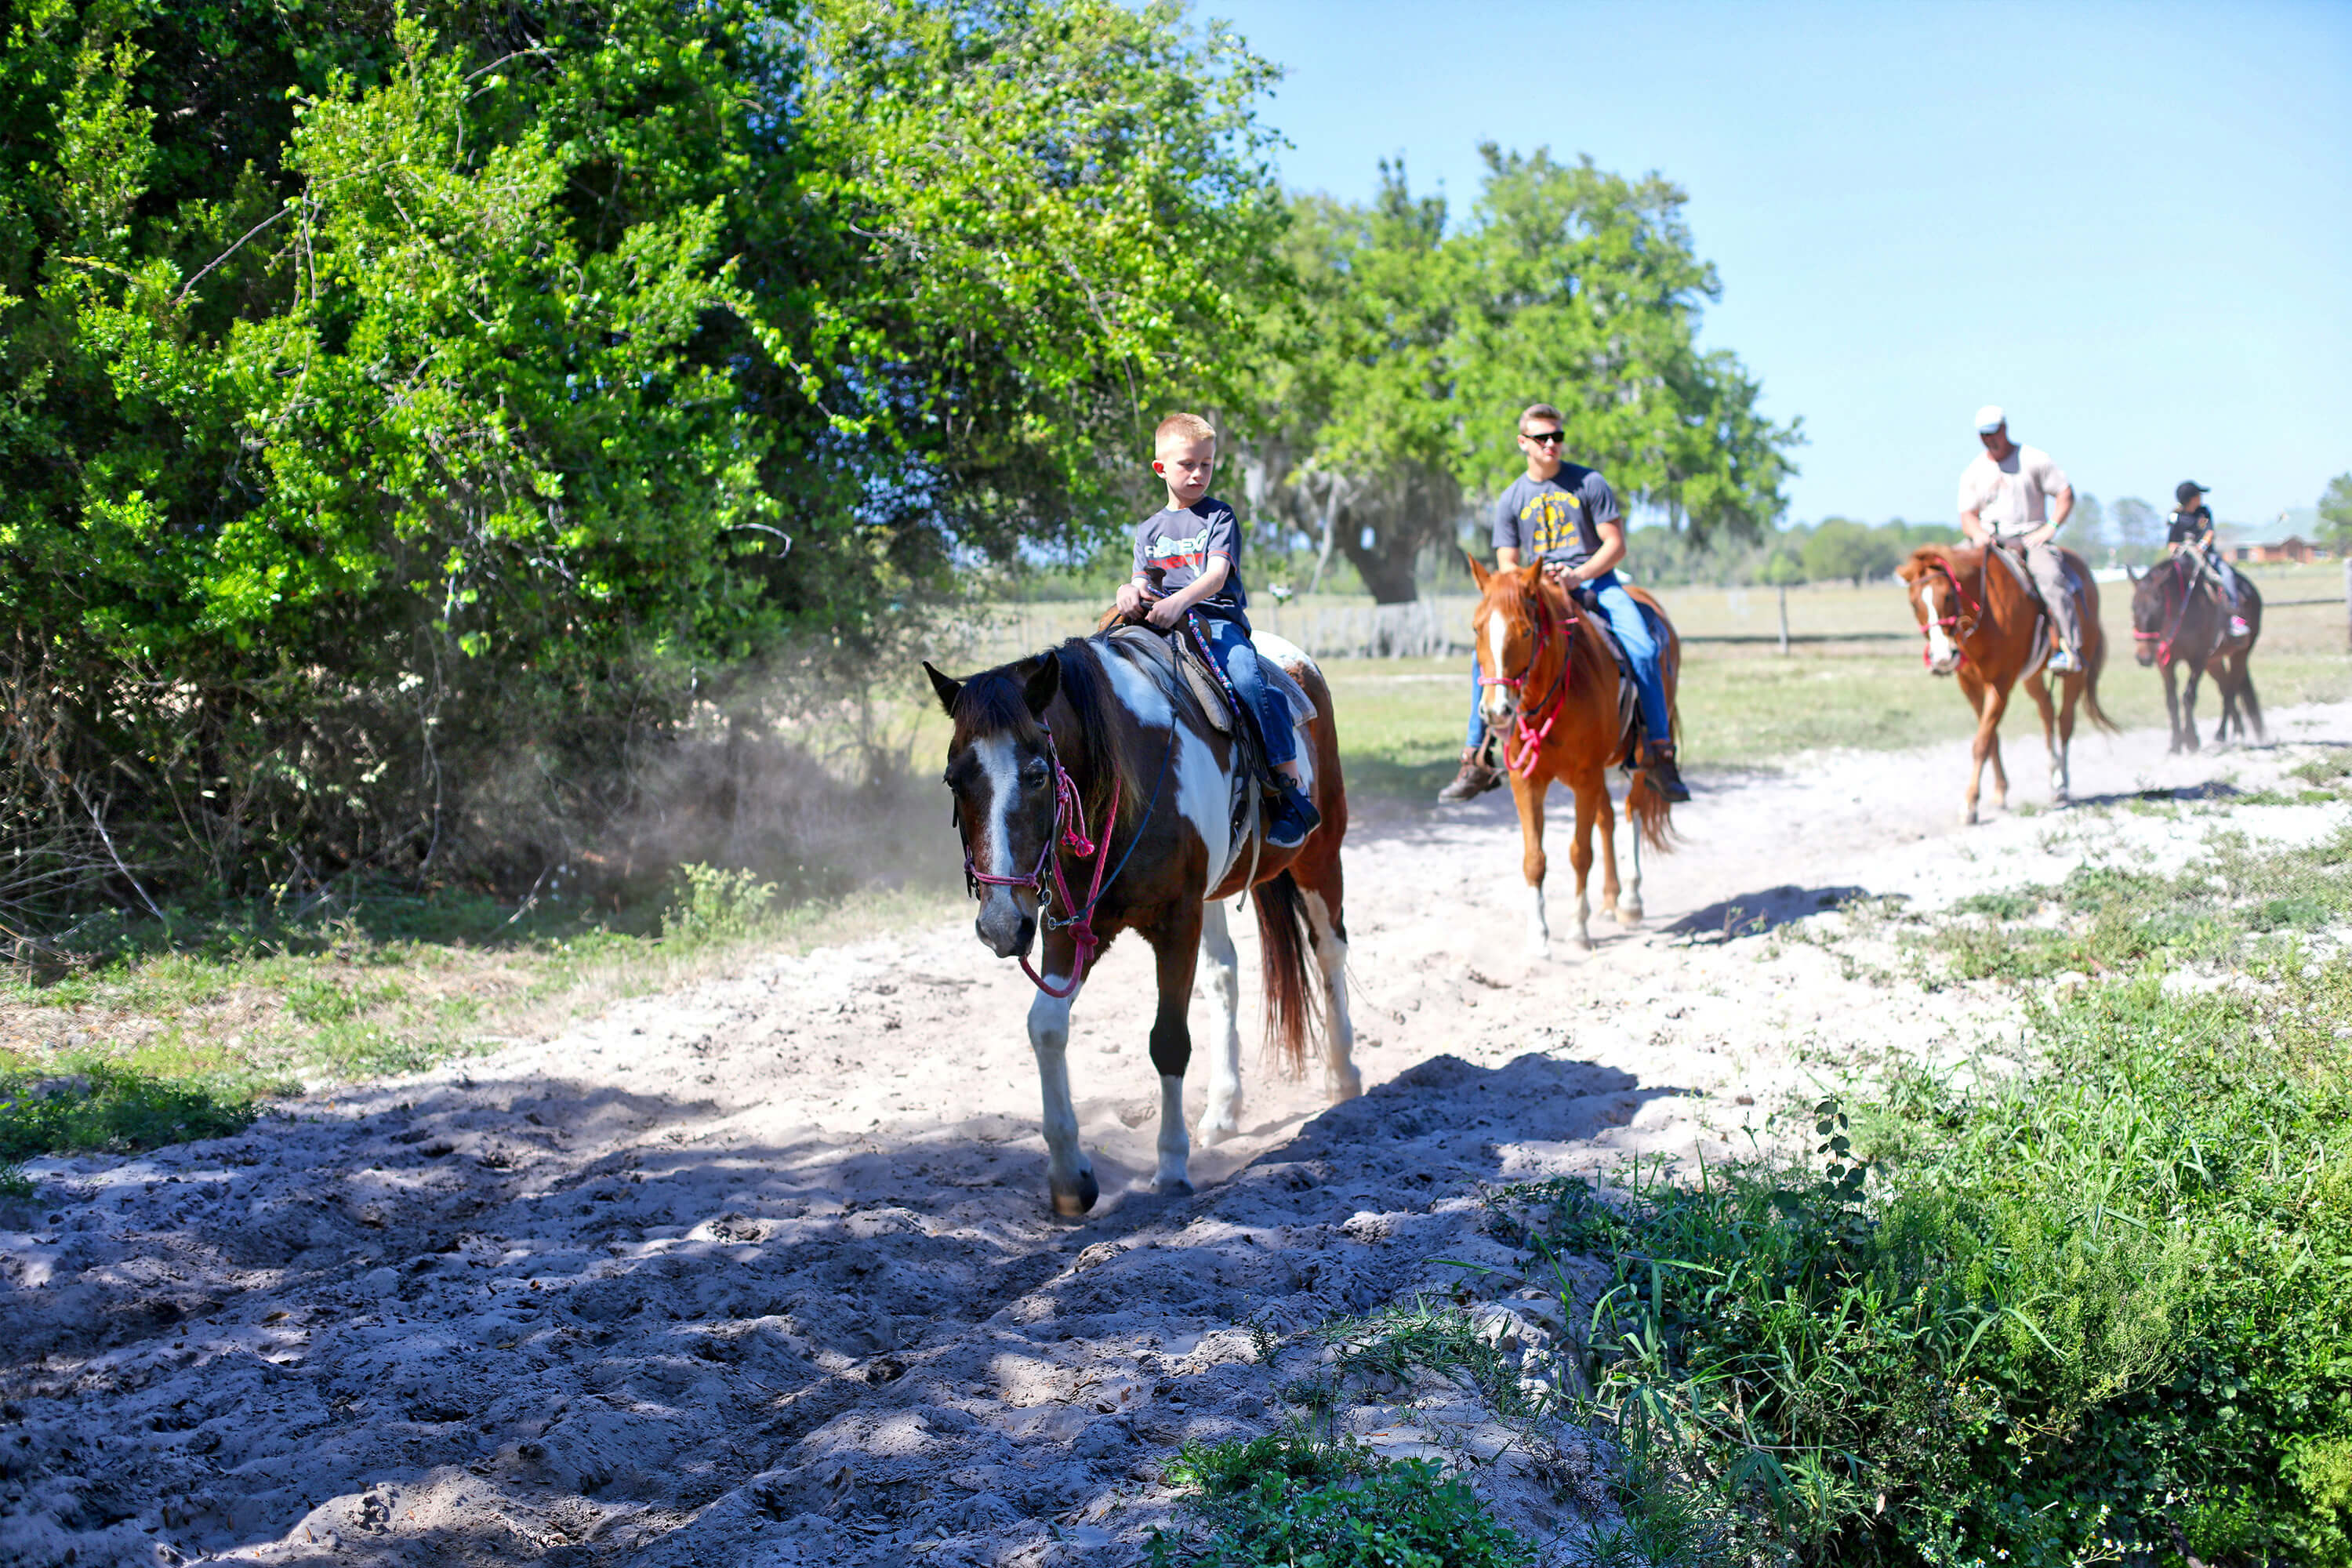 Horseback riding along the winding trails of the Ranch | Westgate River Ranch Resort & Rodeo